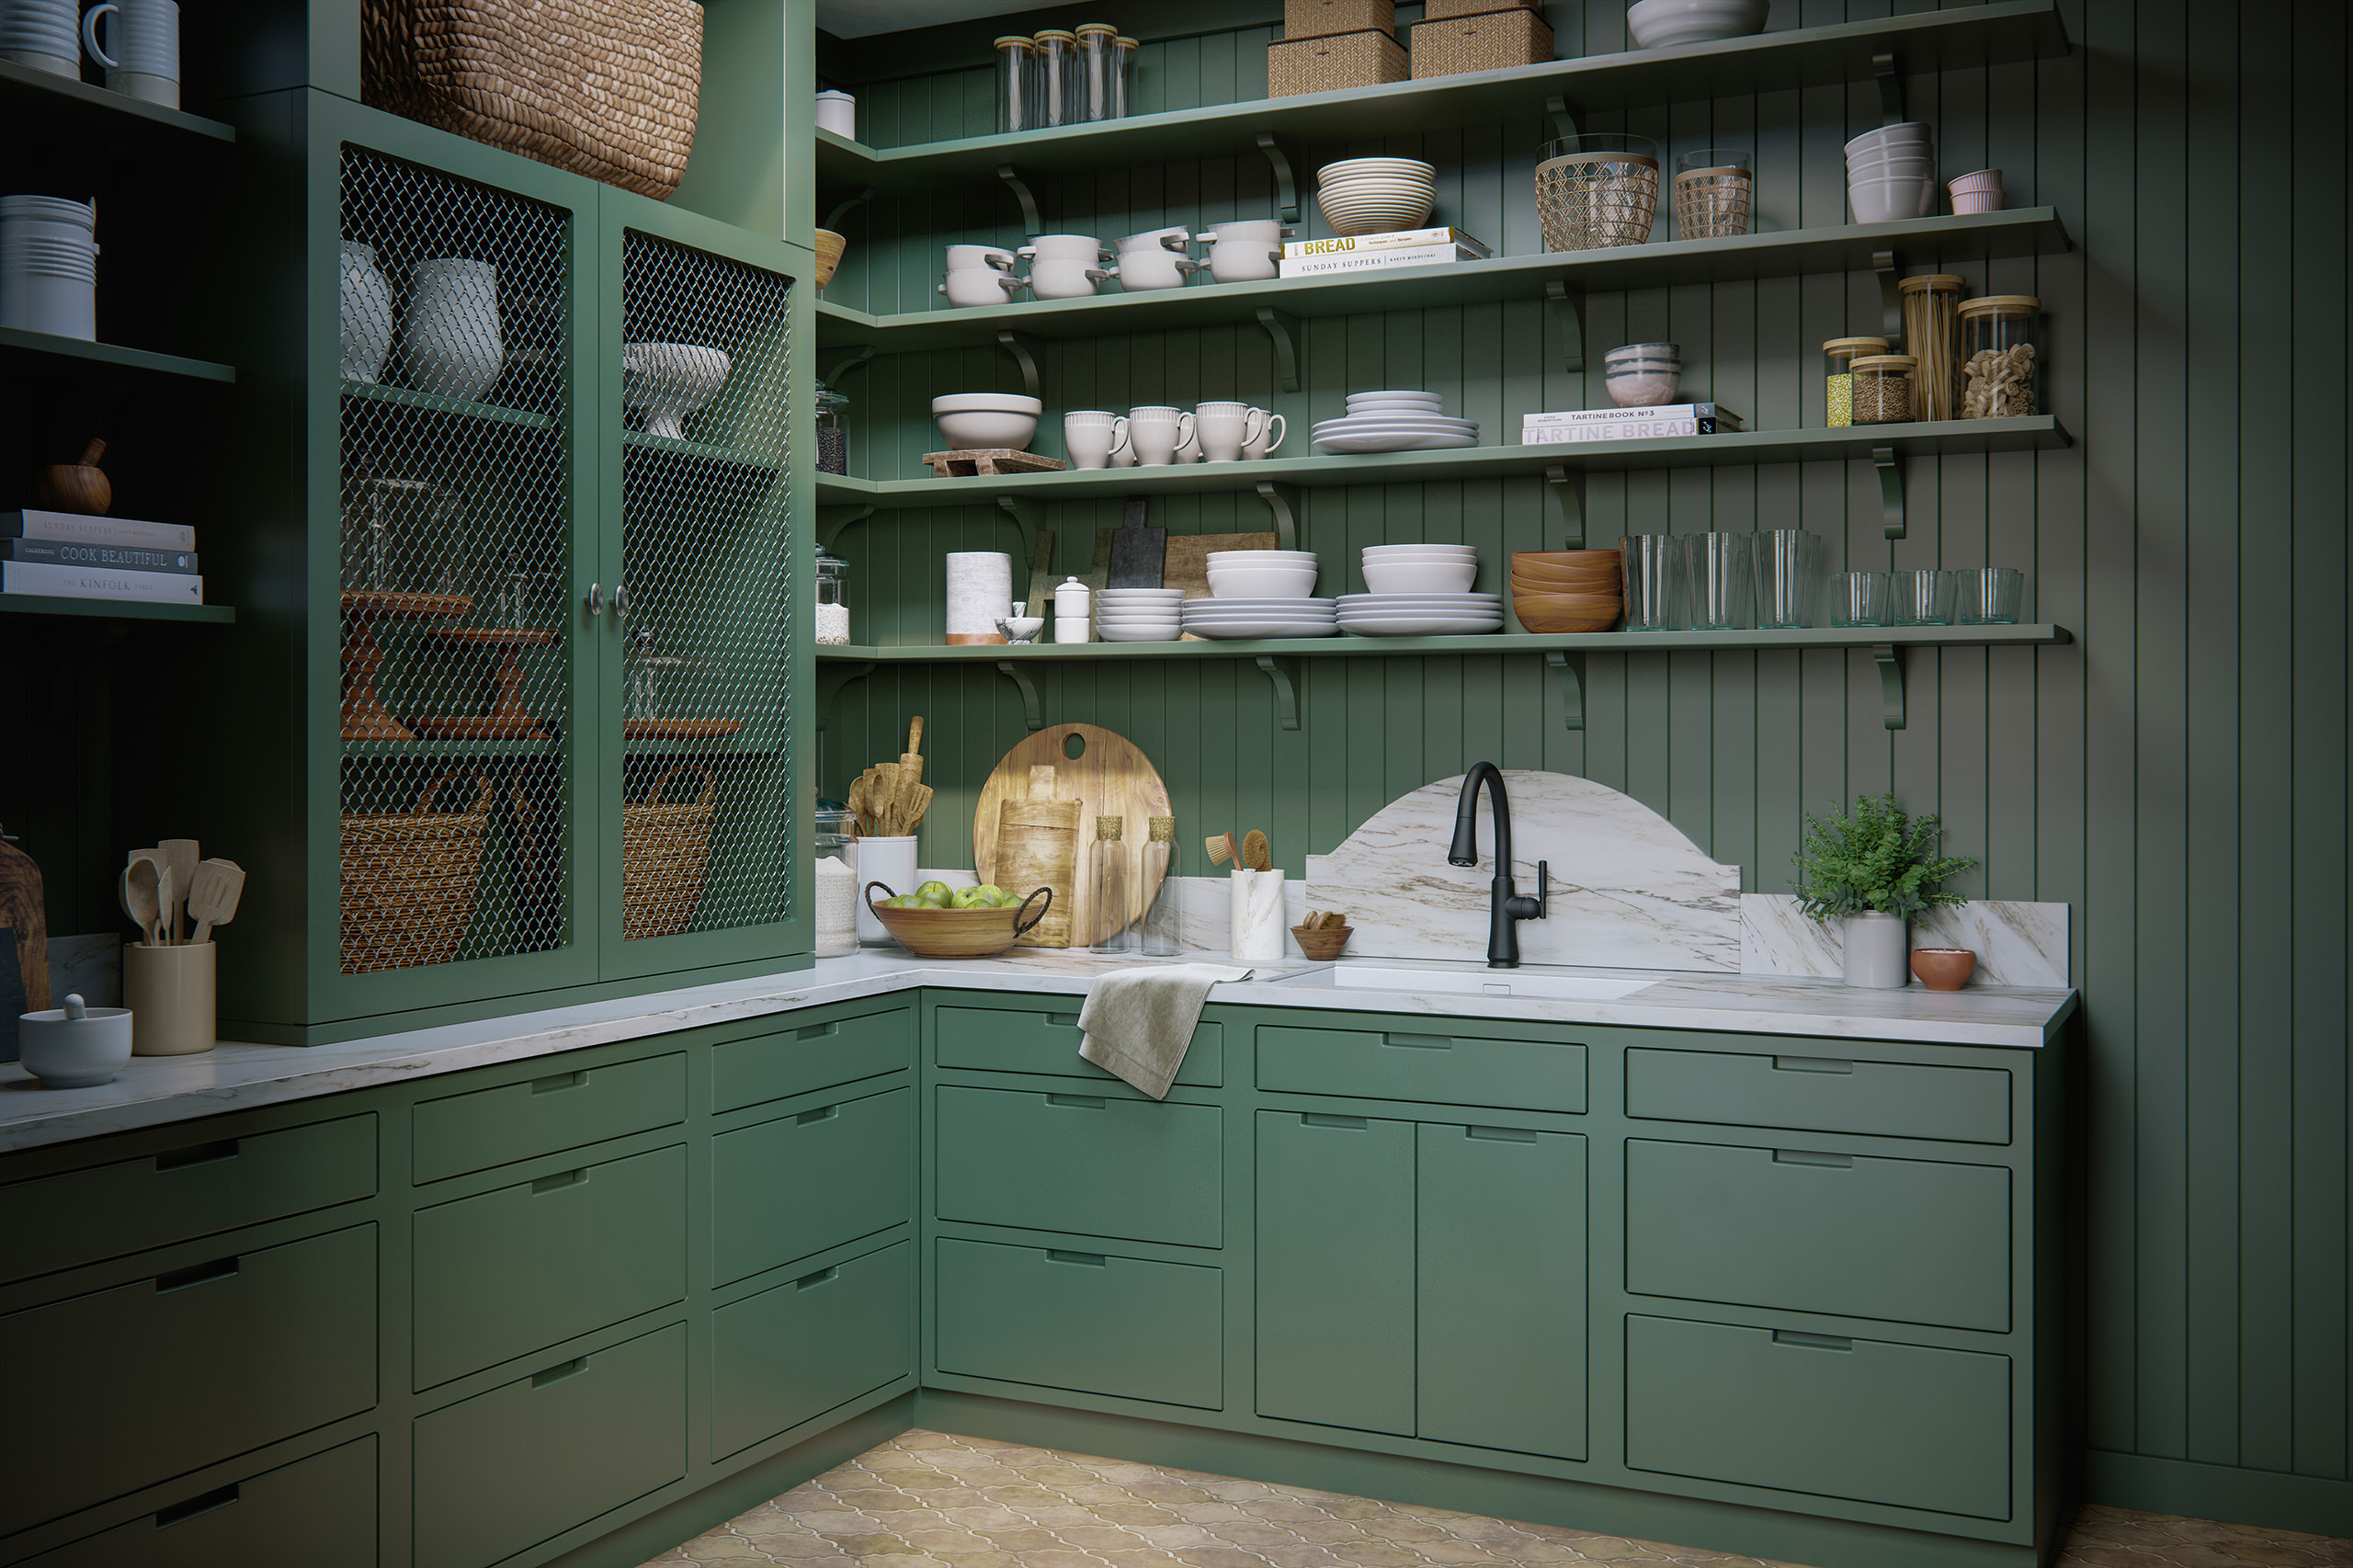 Rendering of shelves with black kitchen faucet, plates, cups, glasses and wicker baskets